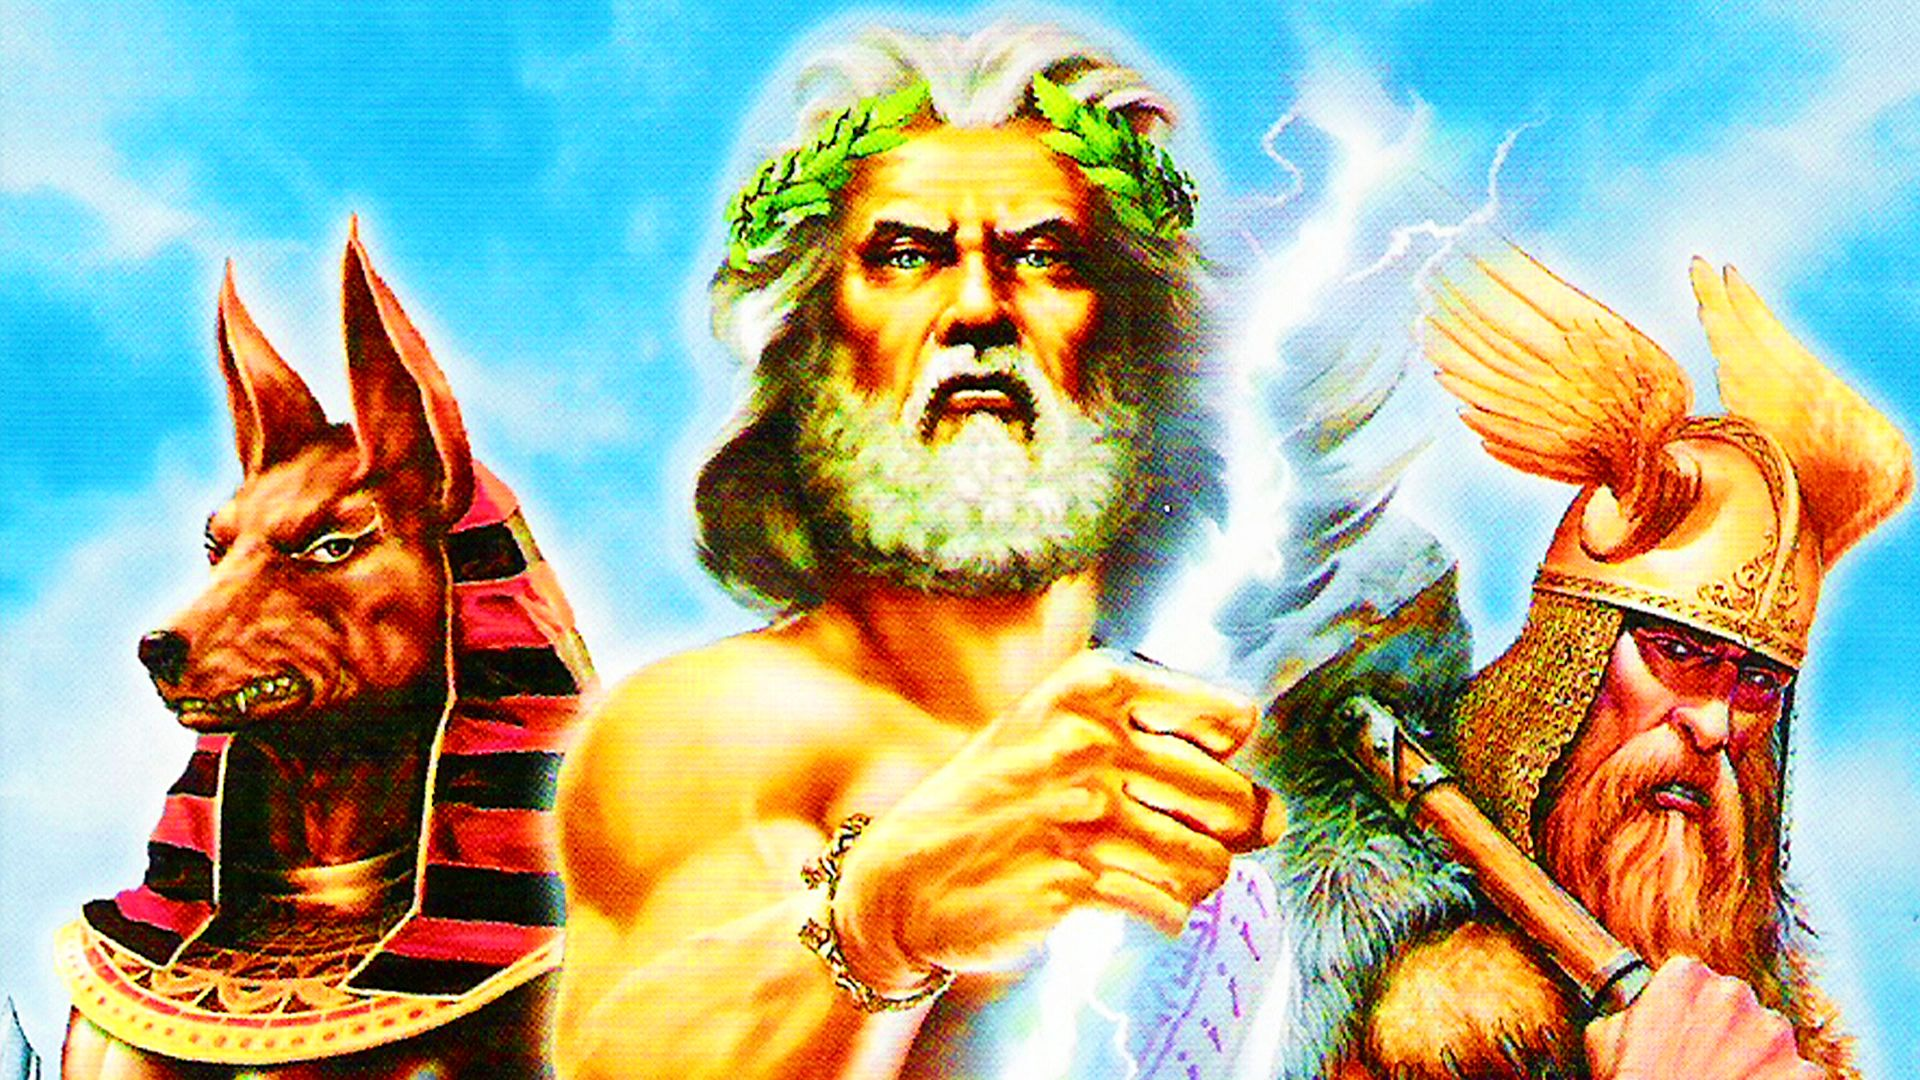 Nevermind Age of Empires, we need an Age of Mythology remaster